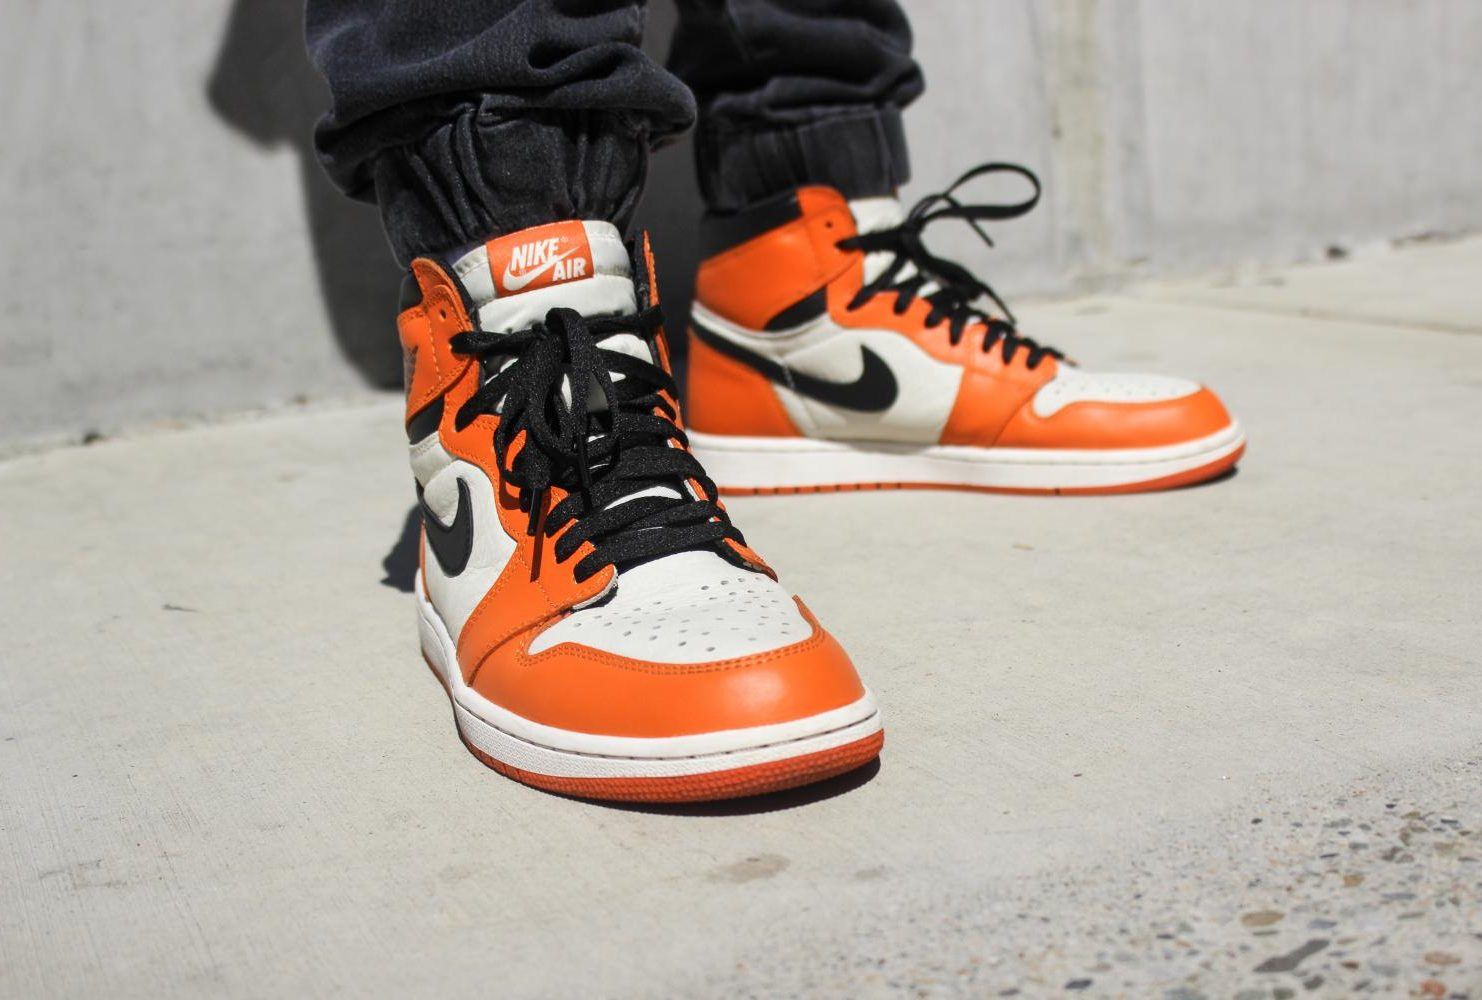 "I skipped all my classes when the off-whites came out, the whole day I just tried to get those…I was here [at ARC], I was just on my phone."" – Sam Del Rio 